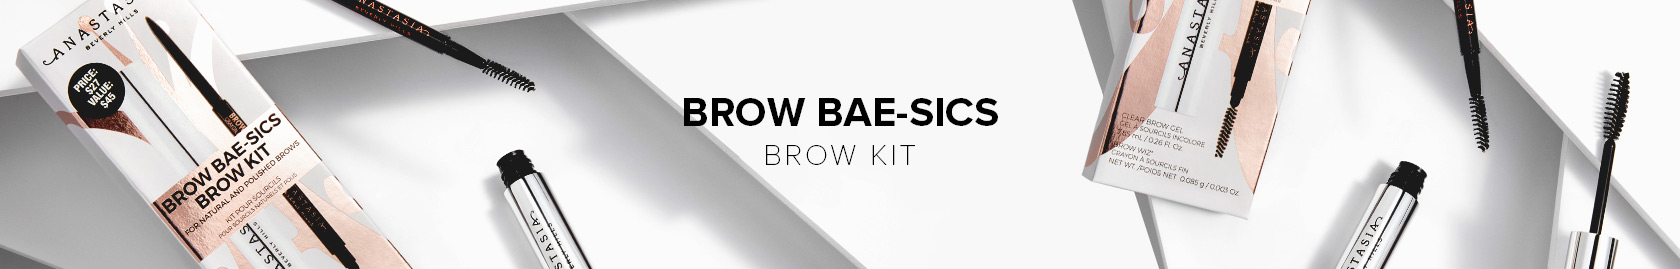 Brow Bae-sics Brow Kit with a full size Brow Wiz and Clear Brow Gel